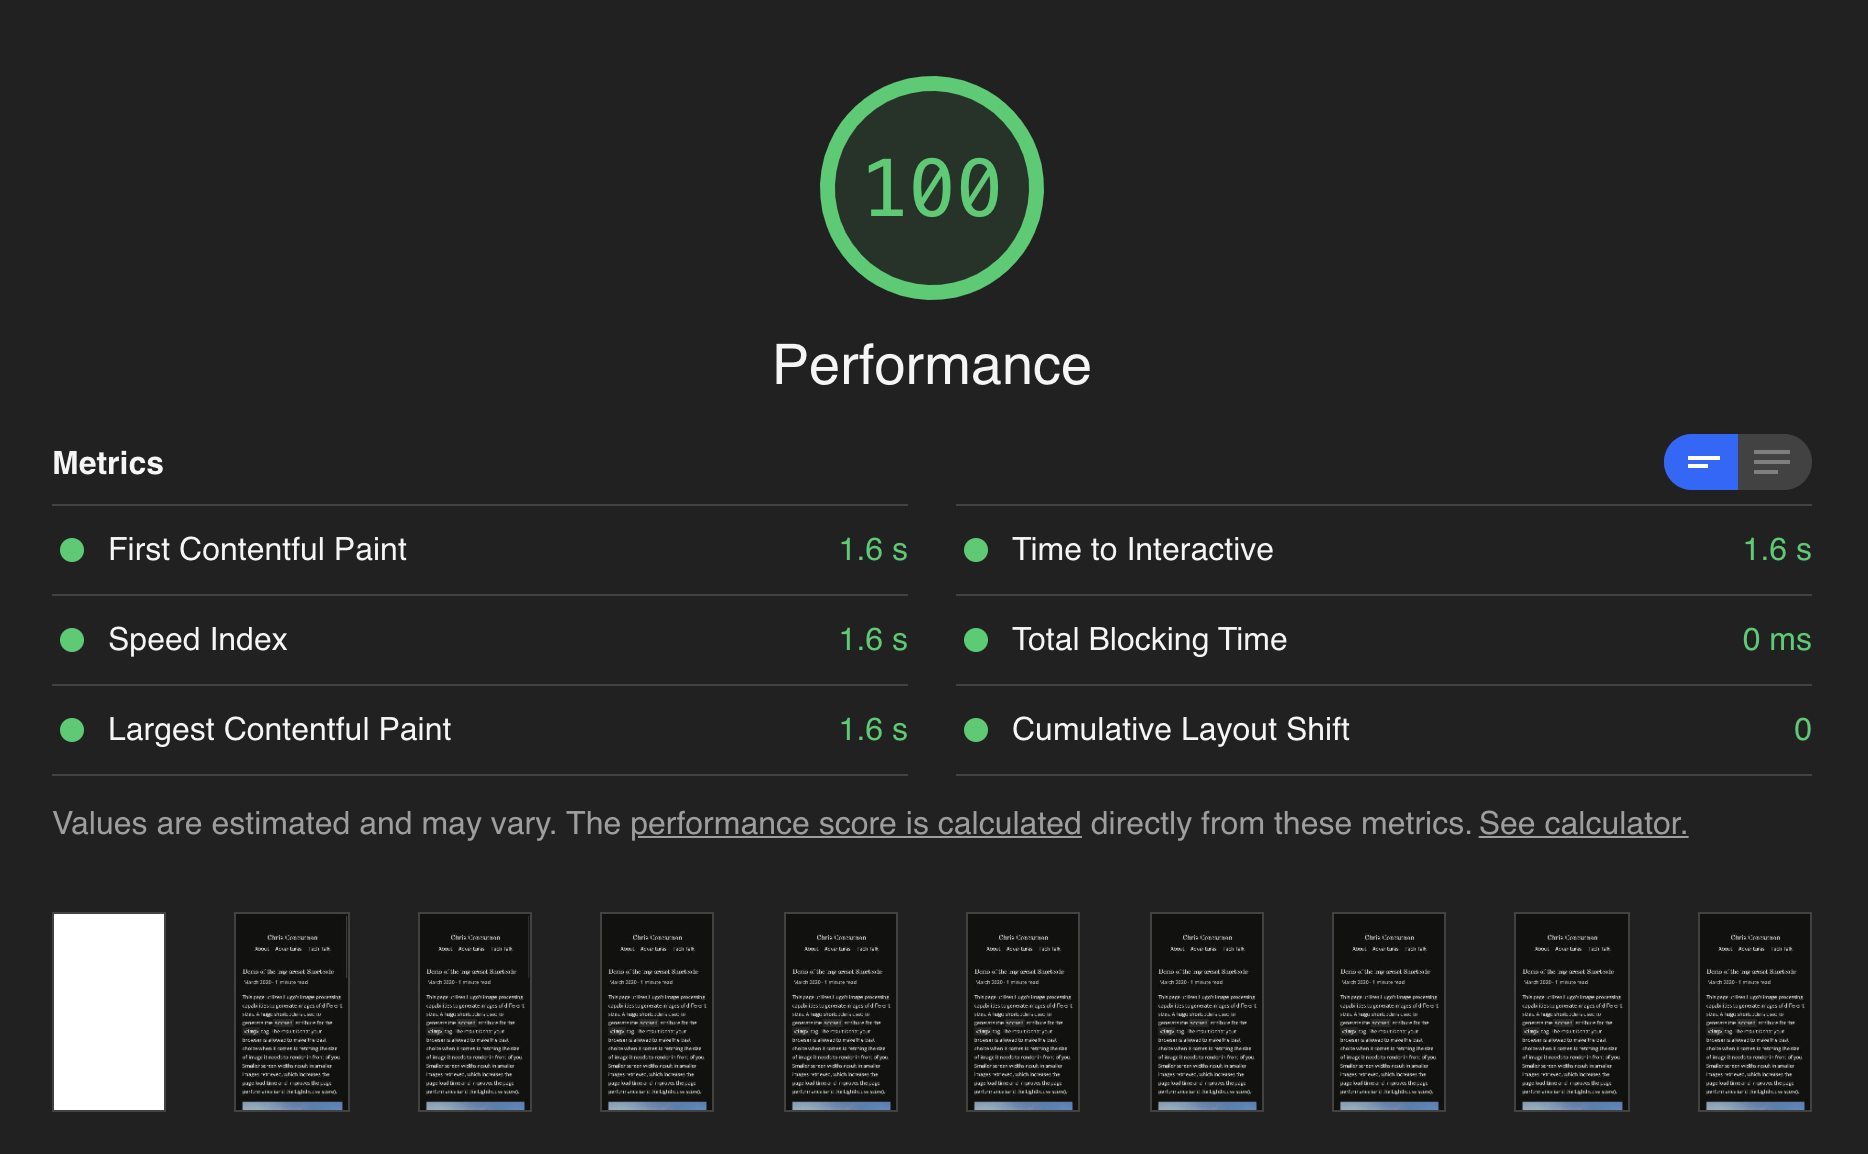 Google Lighthouse score of 100 for performance